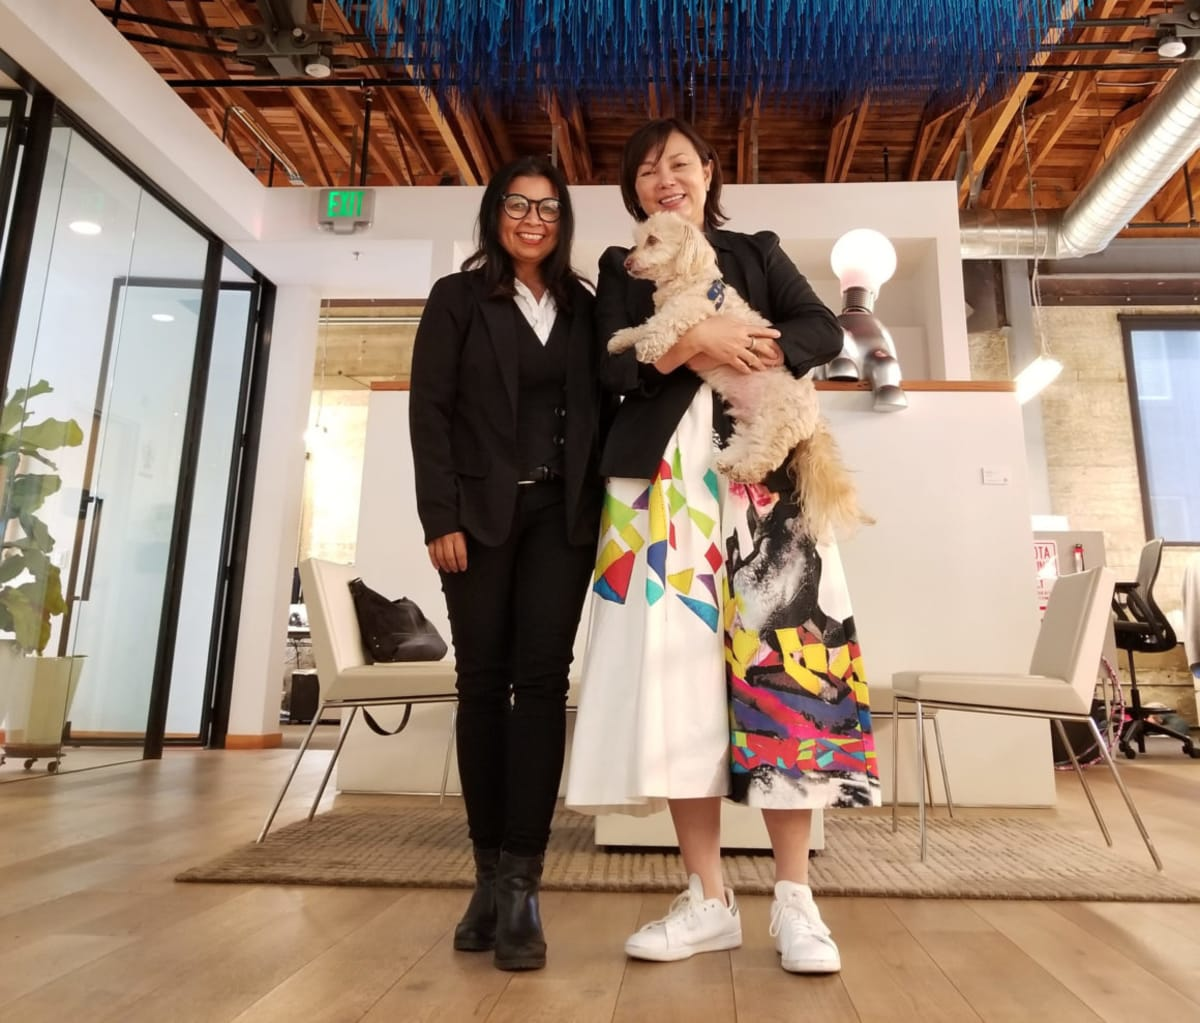 LA Car's Ami Pascual Spear with interTrend's Julia Huang and the interTrend company canine, Renzei